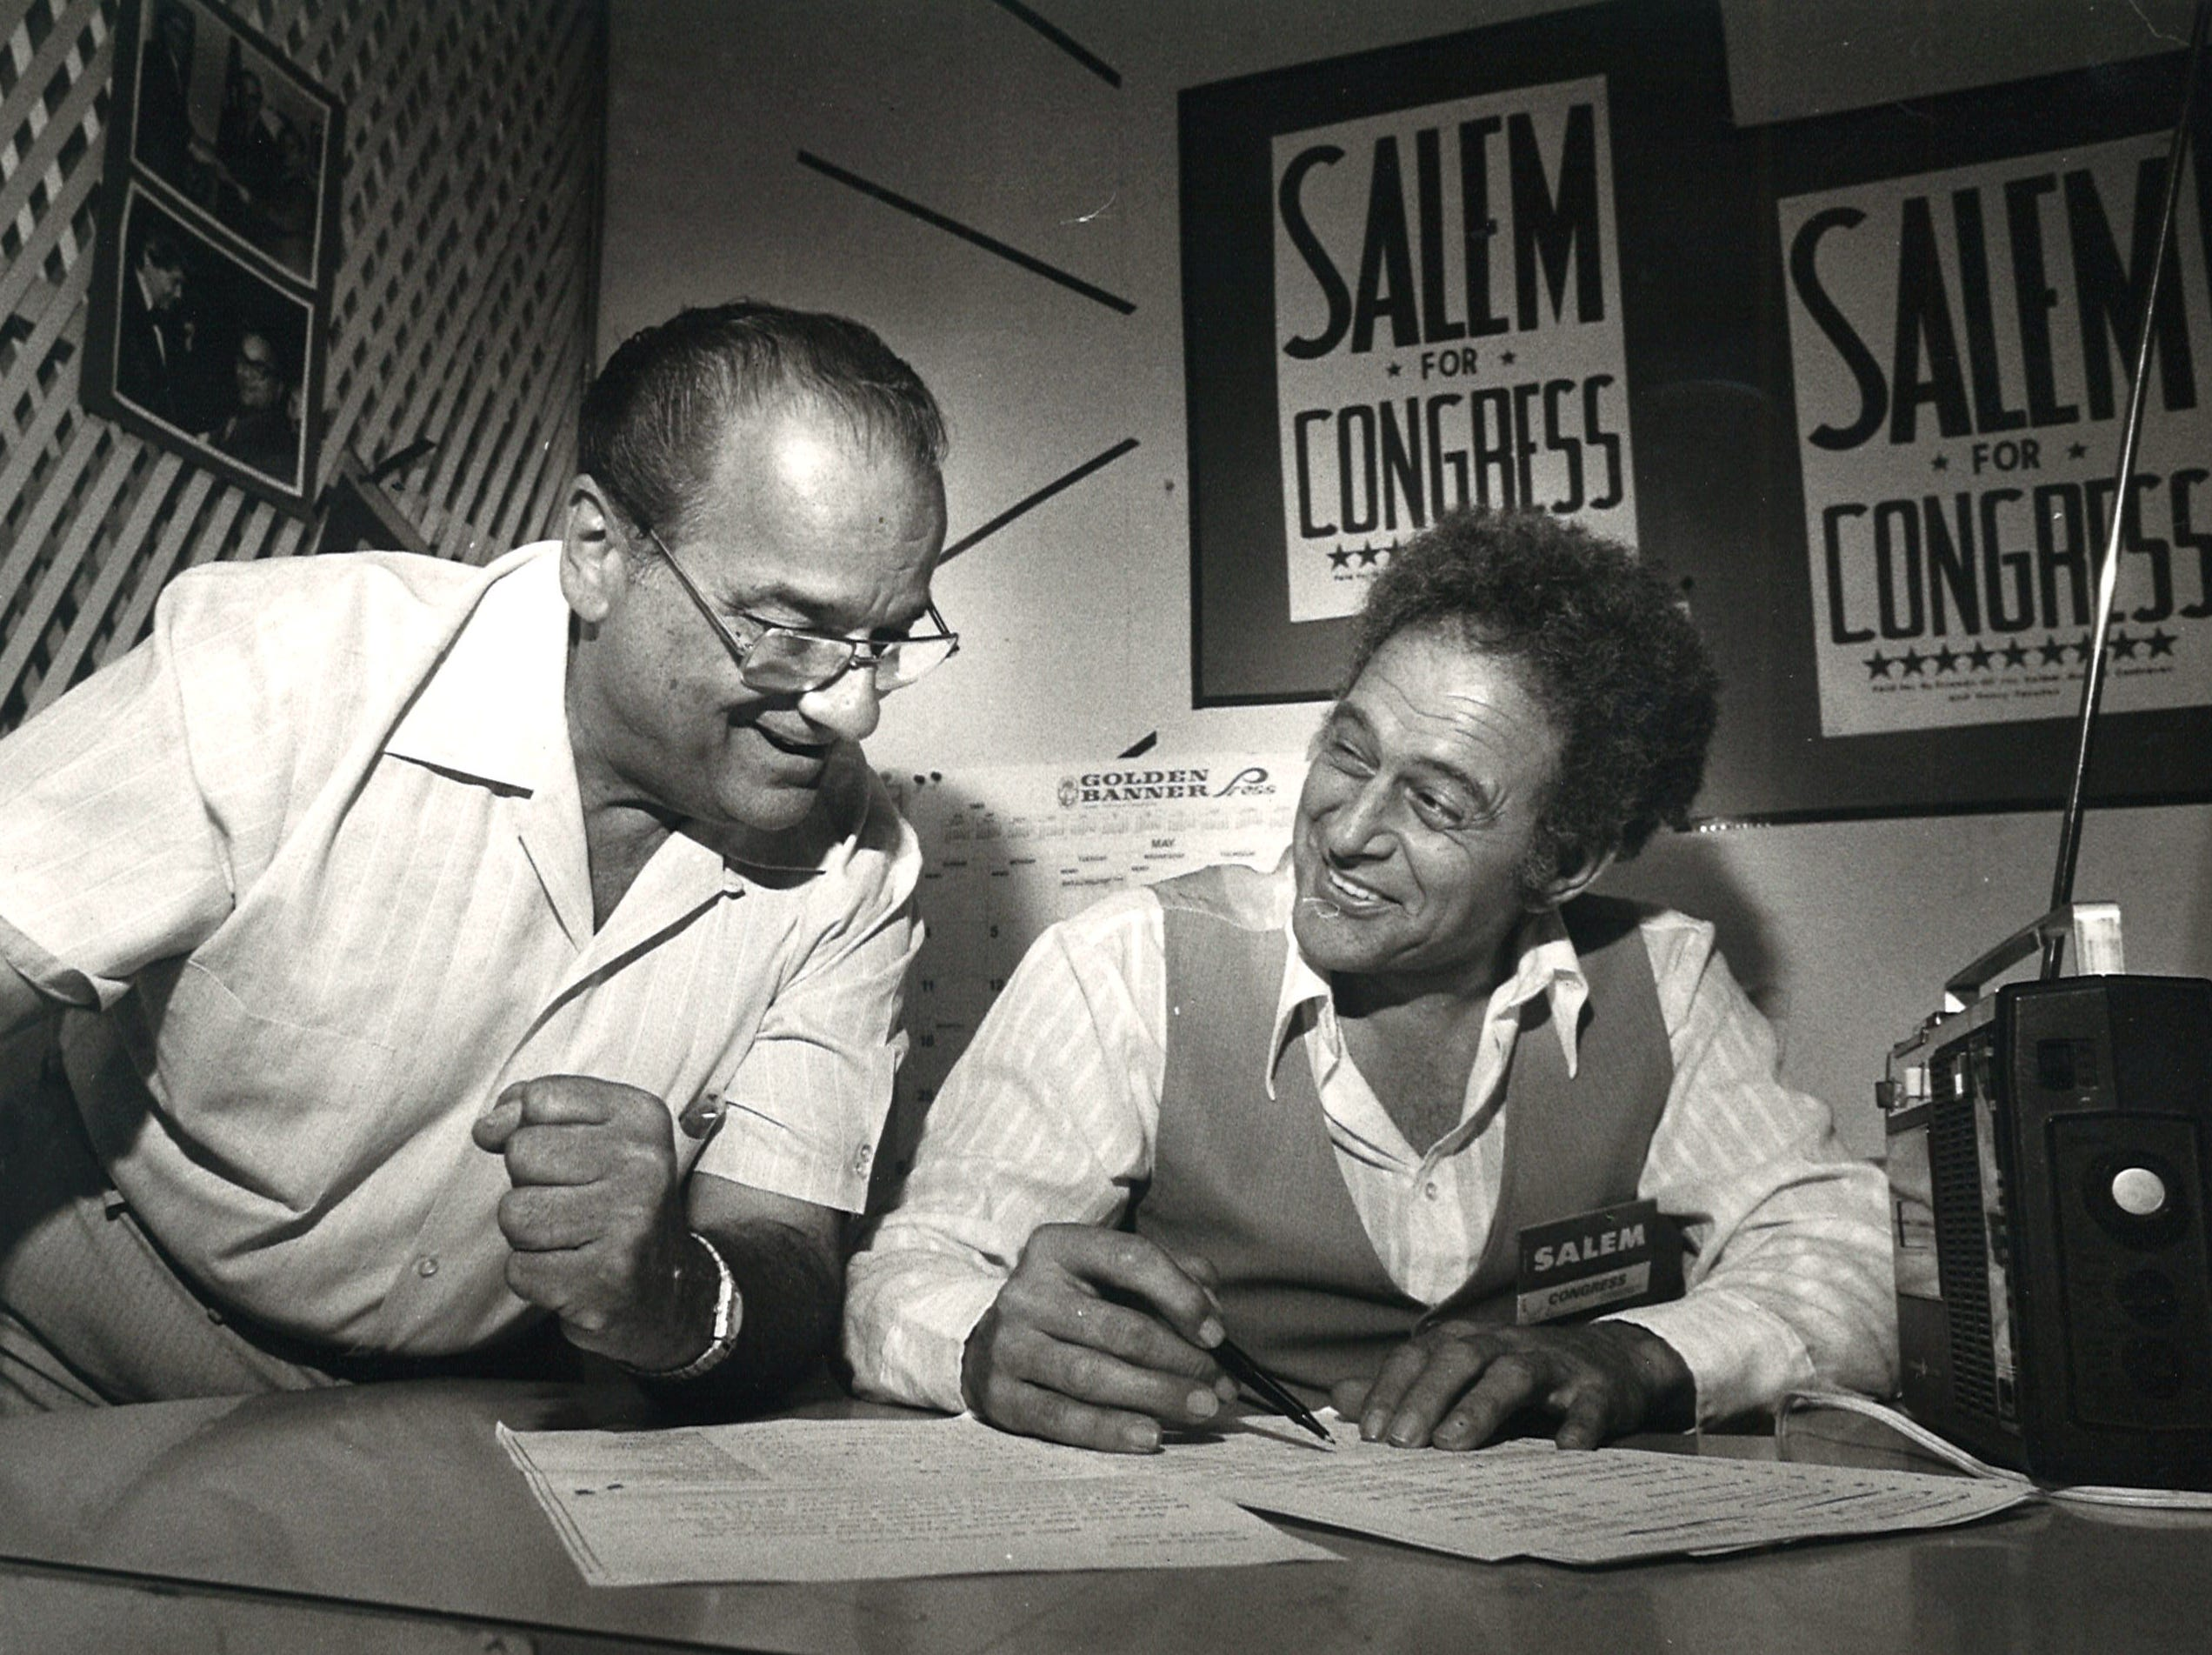 Joe Salem (left), with his campaign coordinator Lou Desmaris (right) on May 3, 1980.